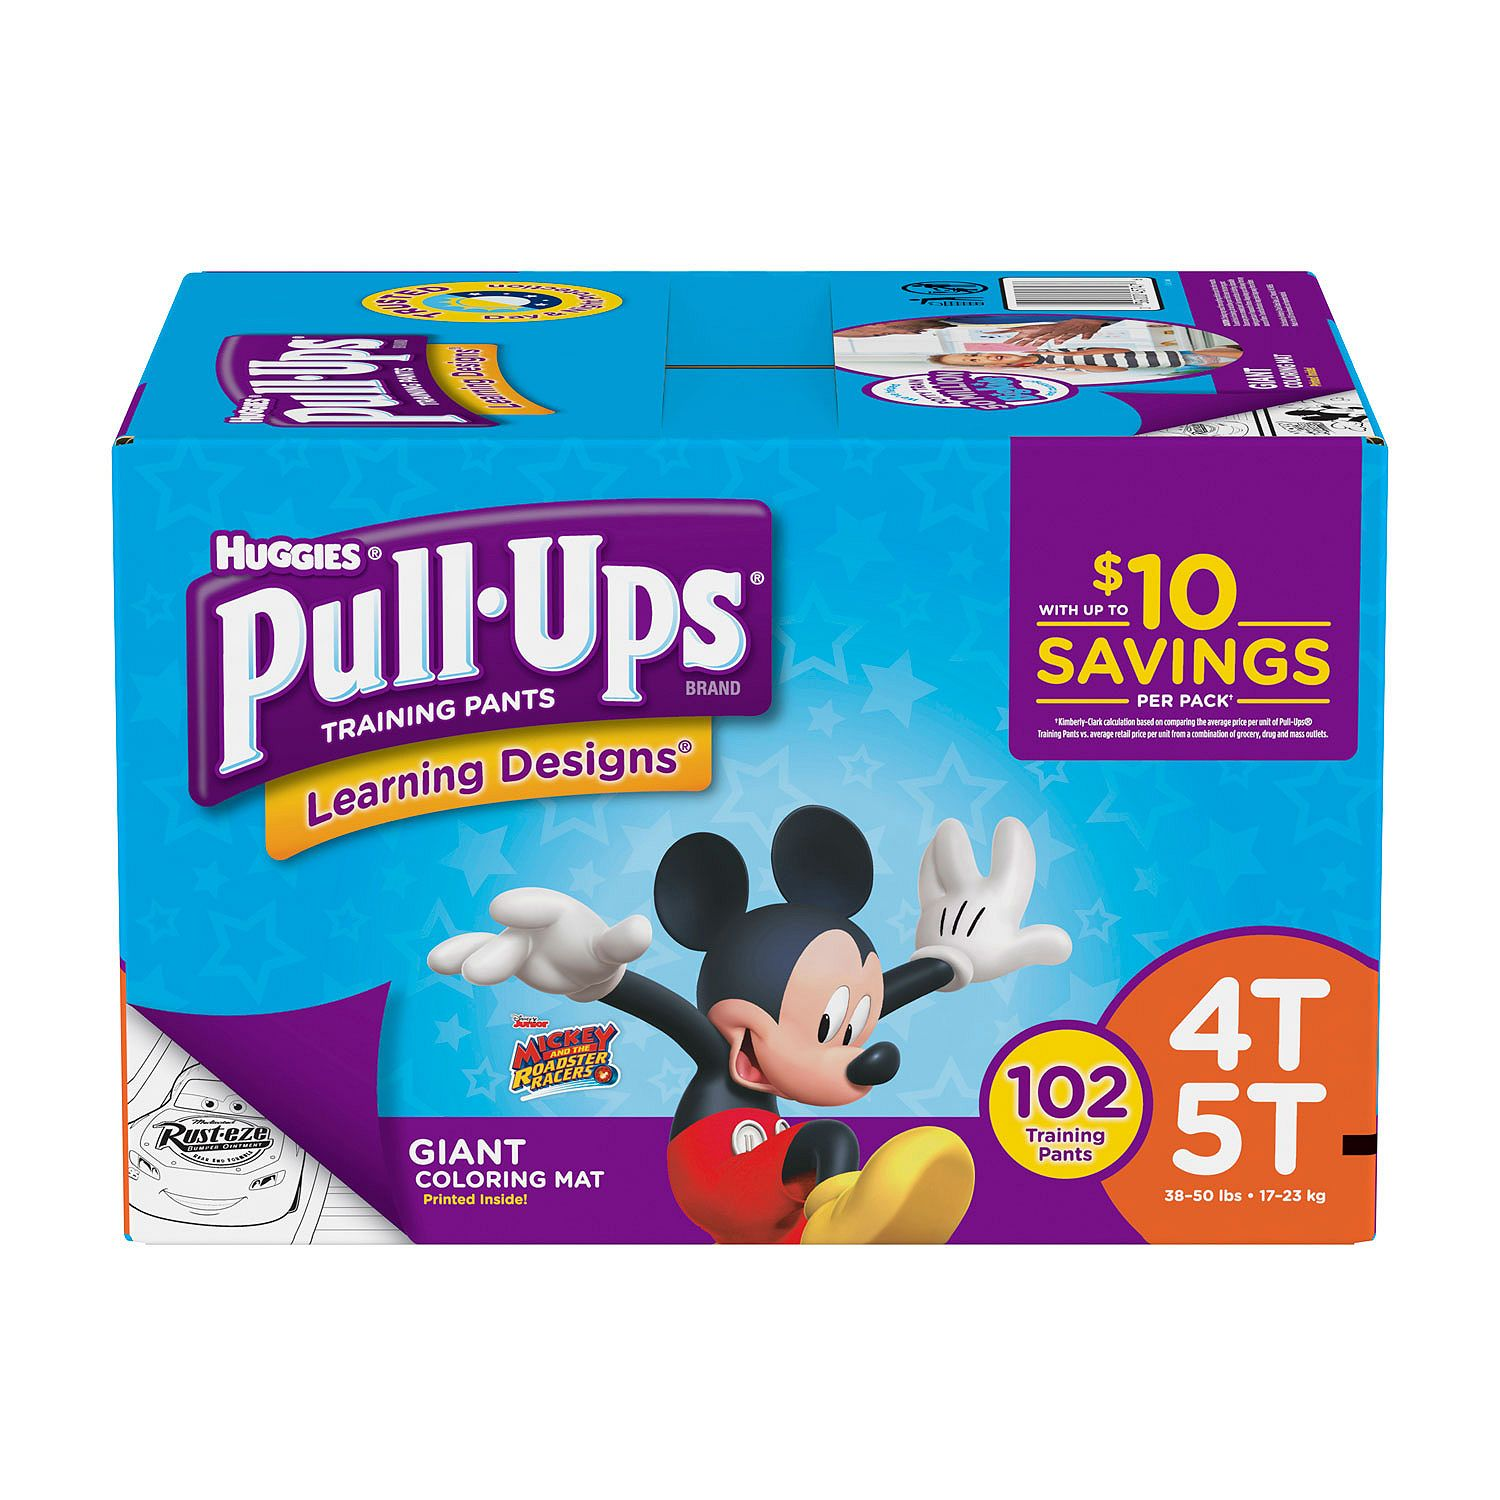 Huggies Pull-Ups Training Pants For Boys - Diaper Size 4T/5T Boys ( 102 Ct.) - (Comfortable & Soft Diaper at a Wholeprice)